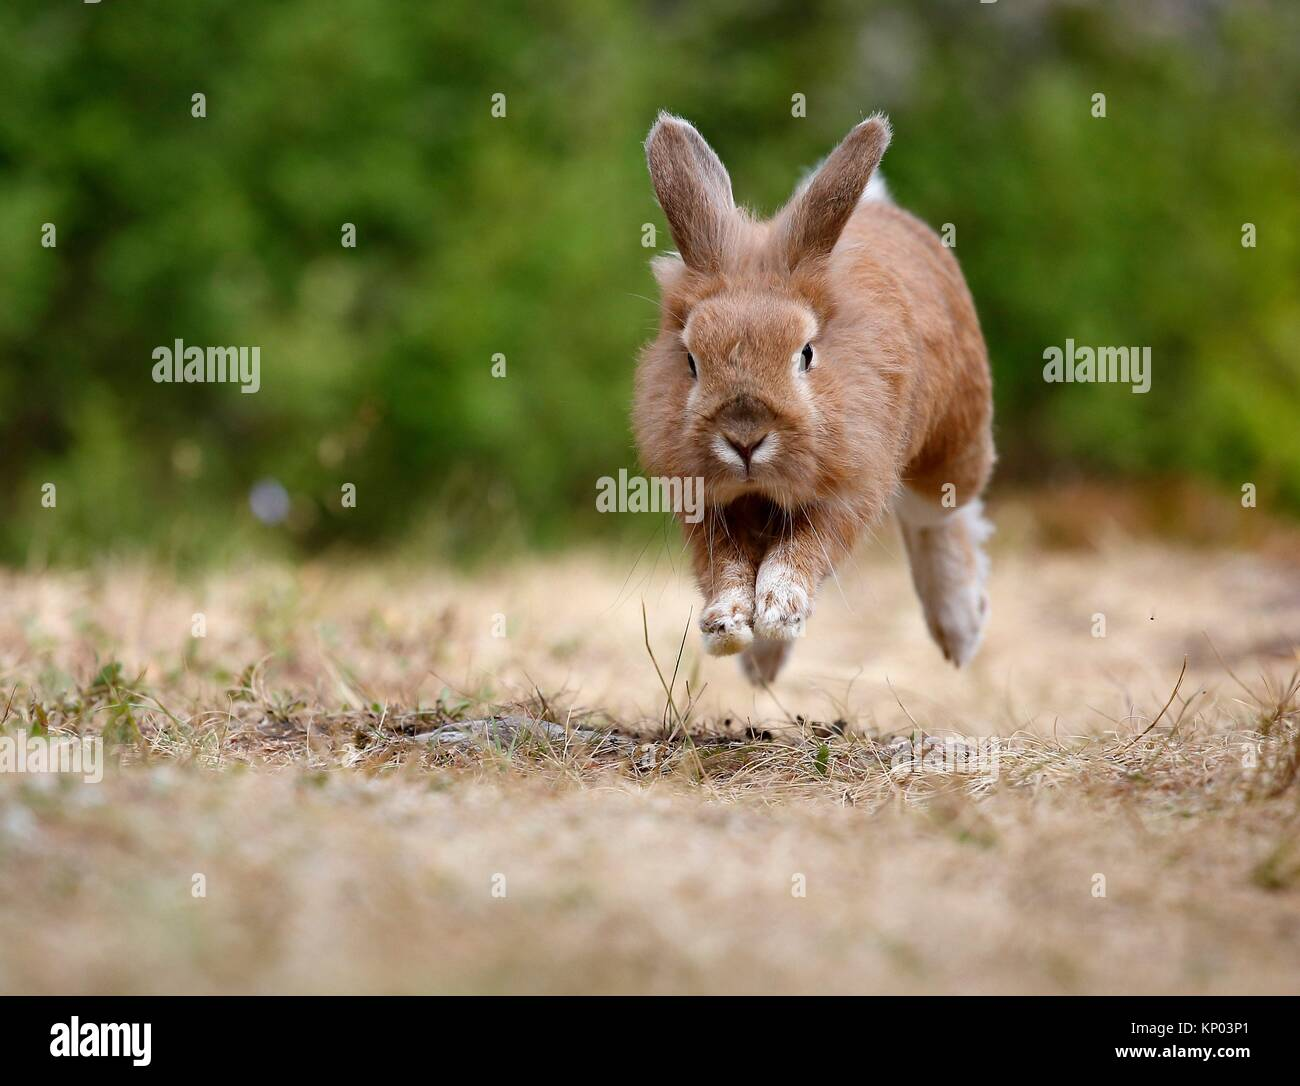 Running Rabbit - Stock Image